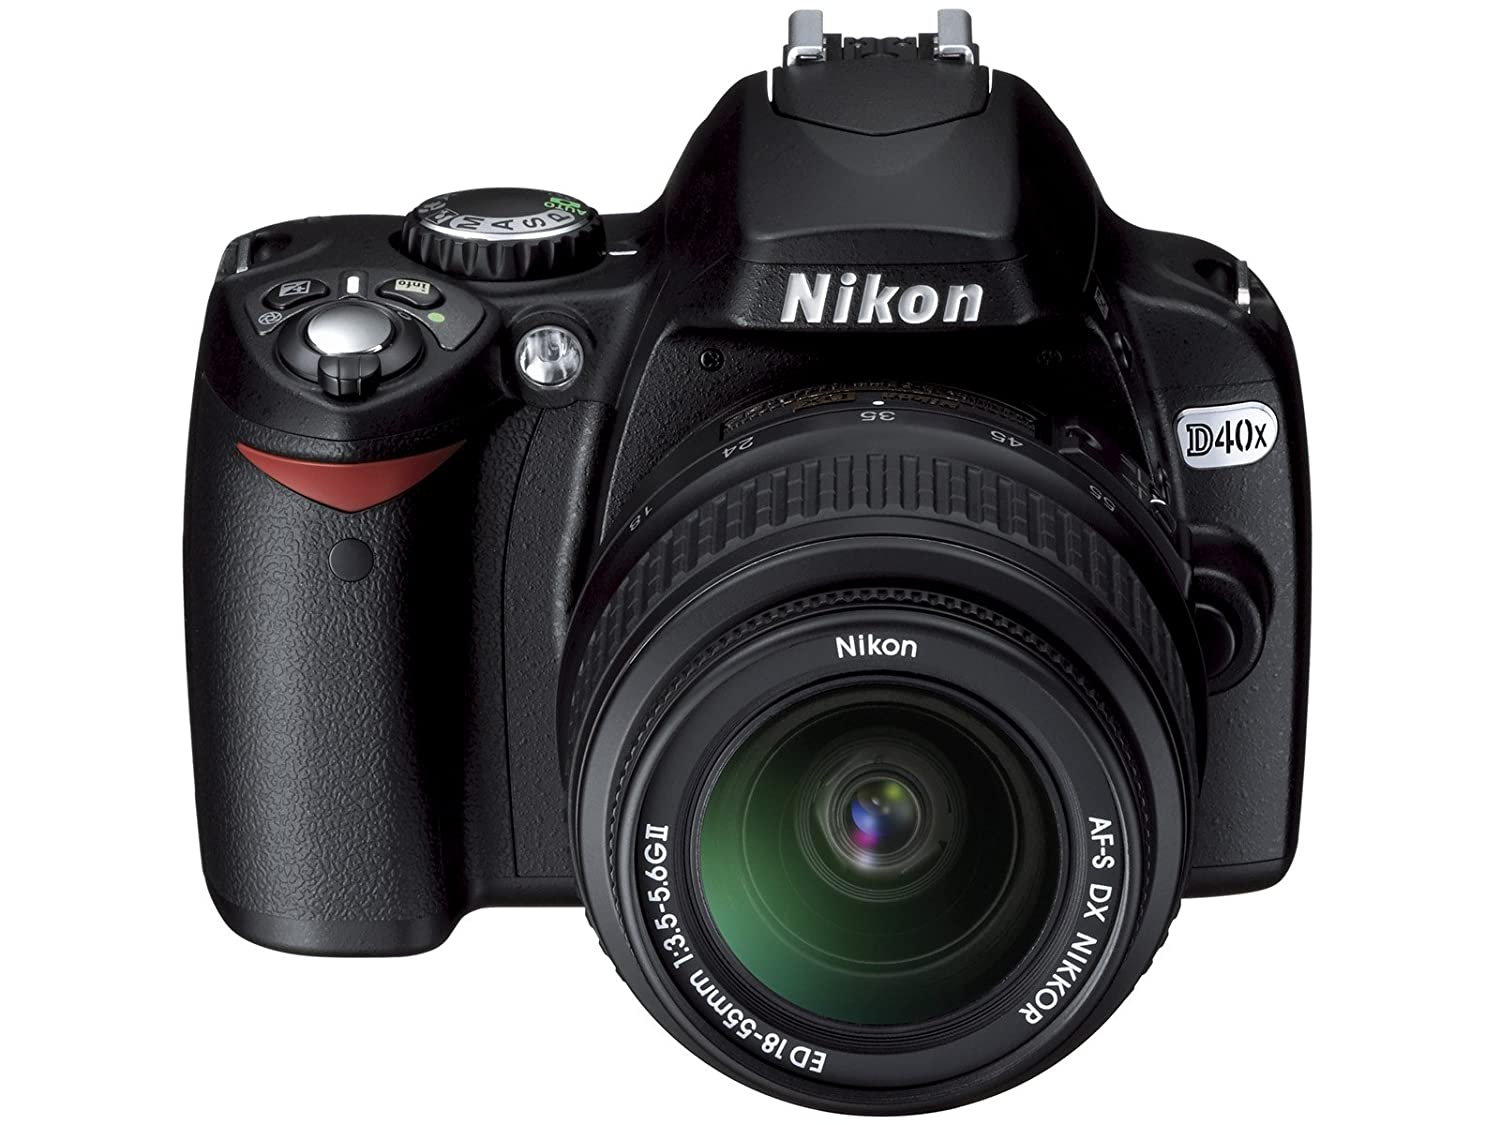 Amazon.com : Nikon D40x 10.2MP Digital SLR Camera with 18-55mm f/3.5-5.6G  ED II AF-S DX Zoom-Nikkor Lens (OLD MODEL) : Camera & Photo